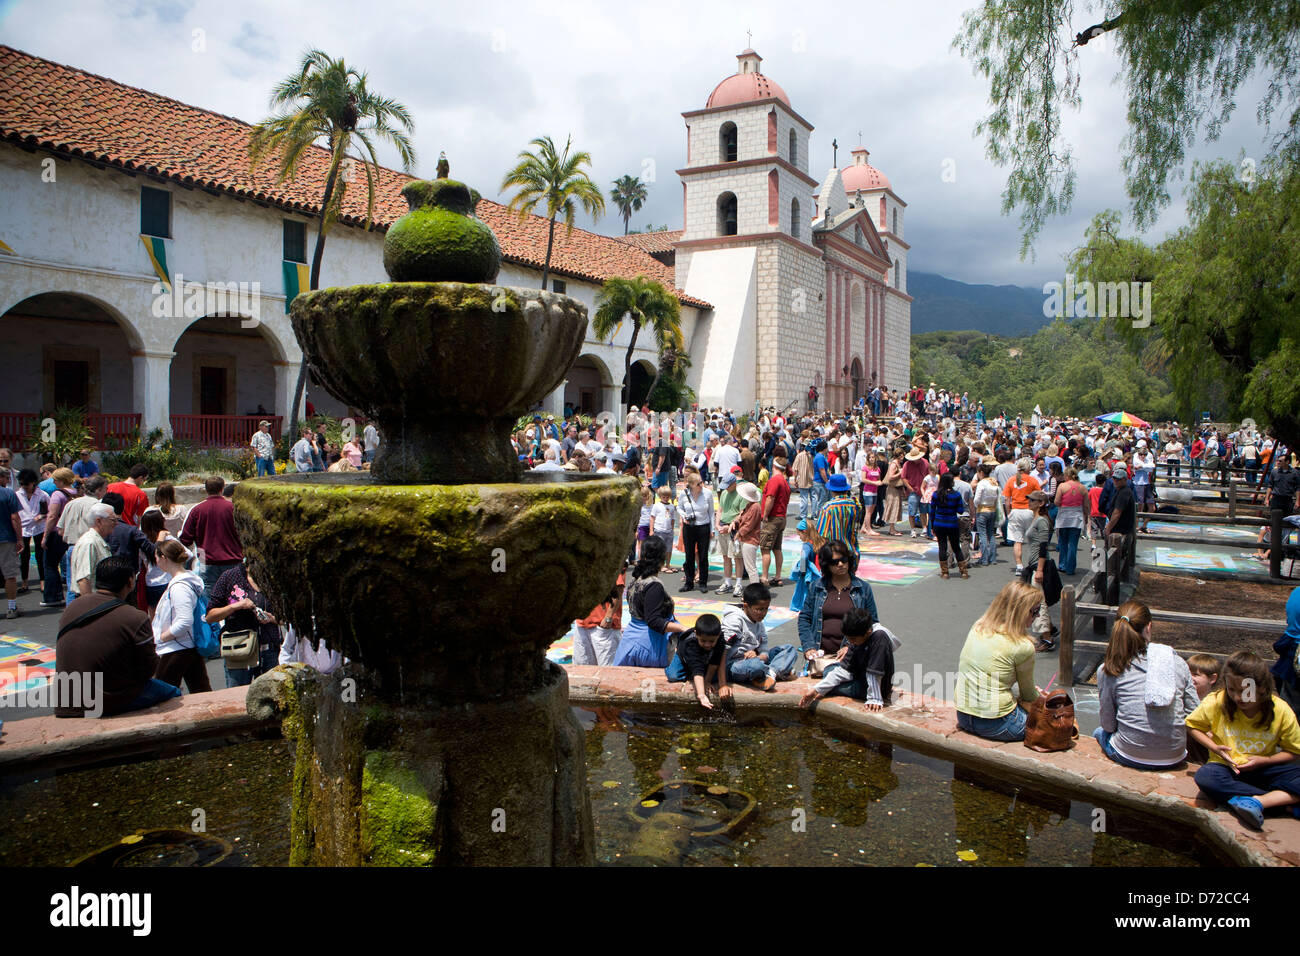 Crowds gather in front of Santa Barbara's historic mission during I Madonnari, the city's famous chalk drawing - Stock Image